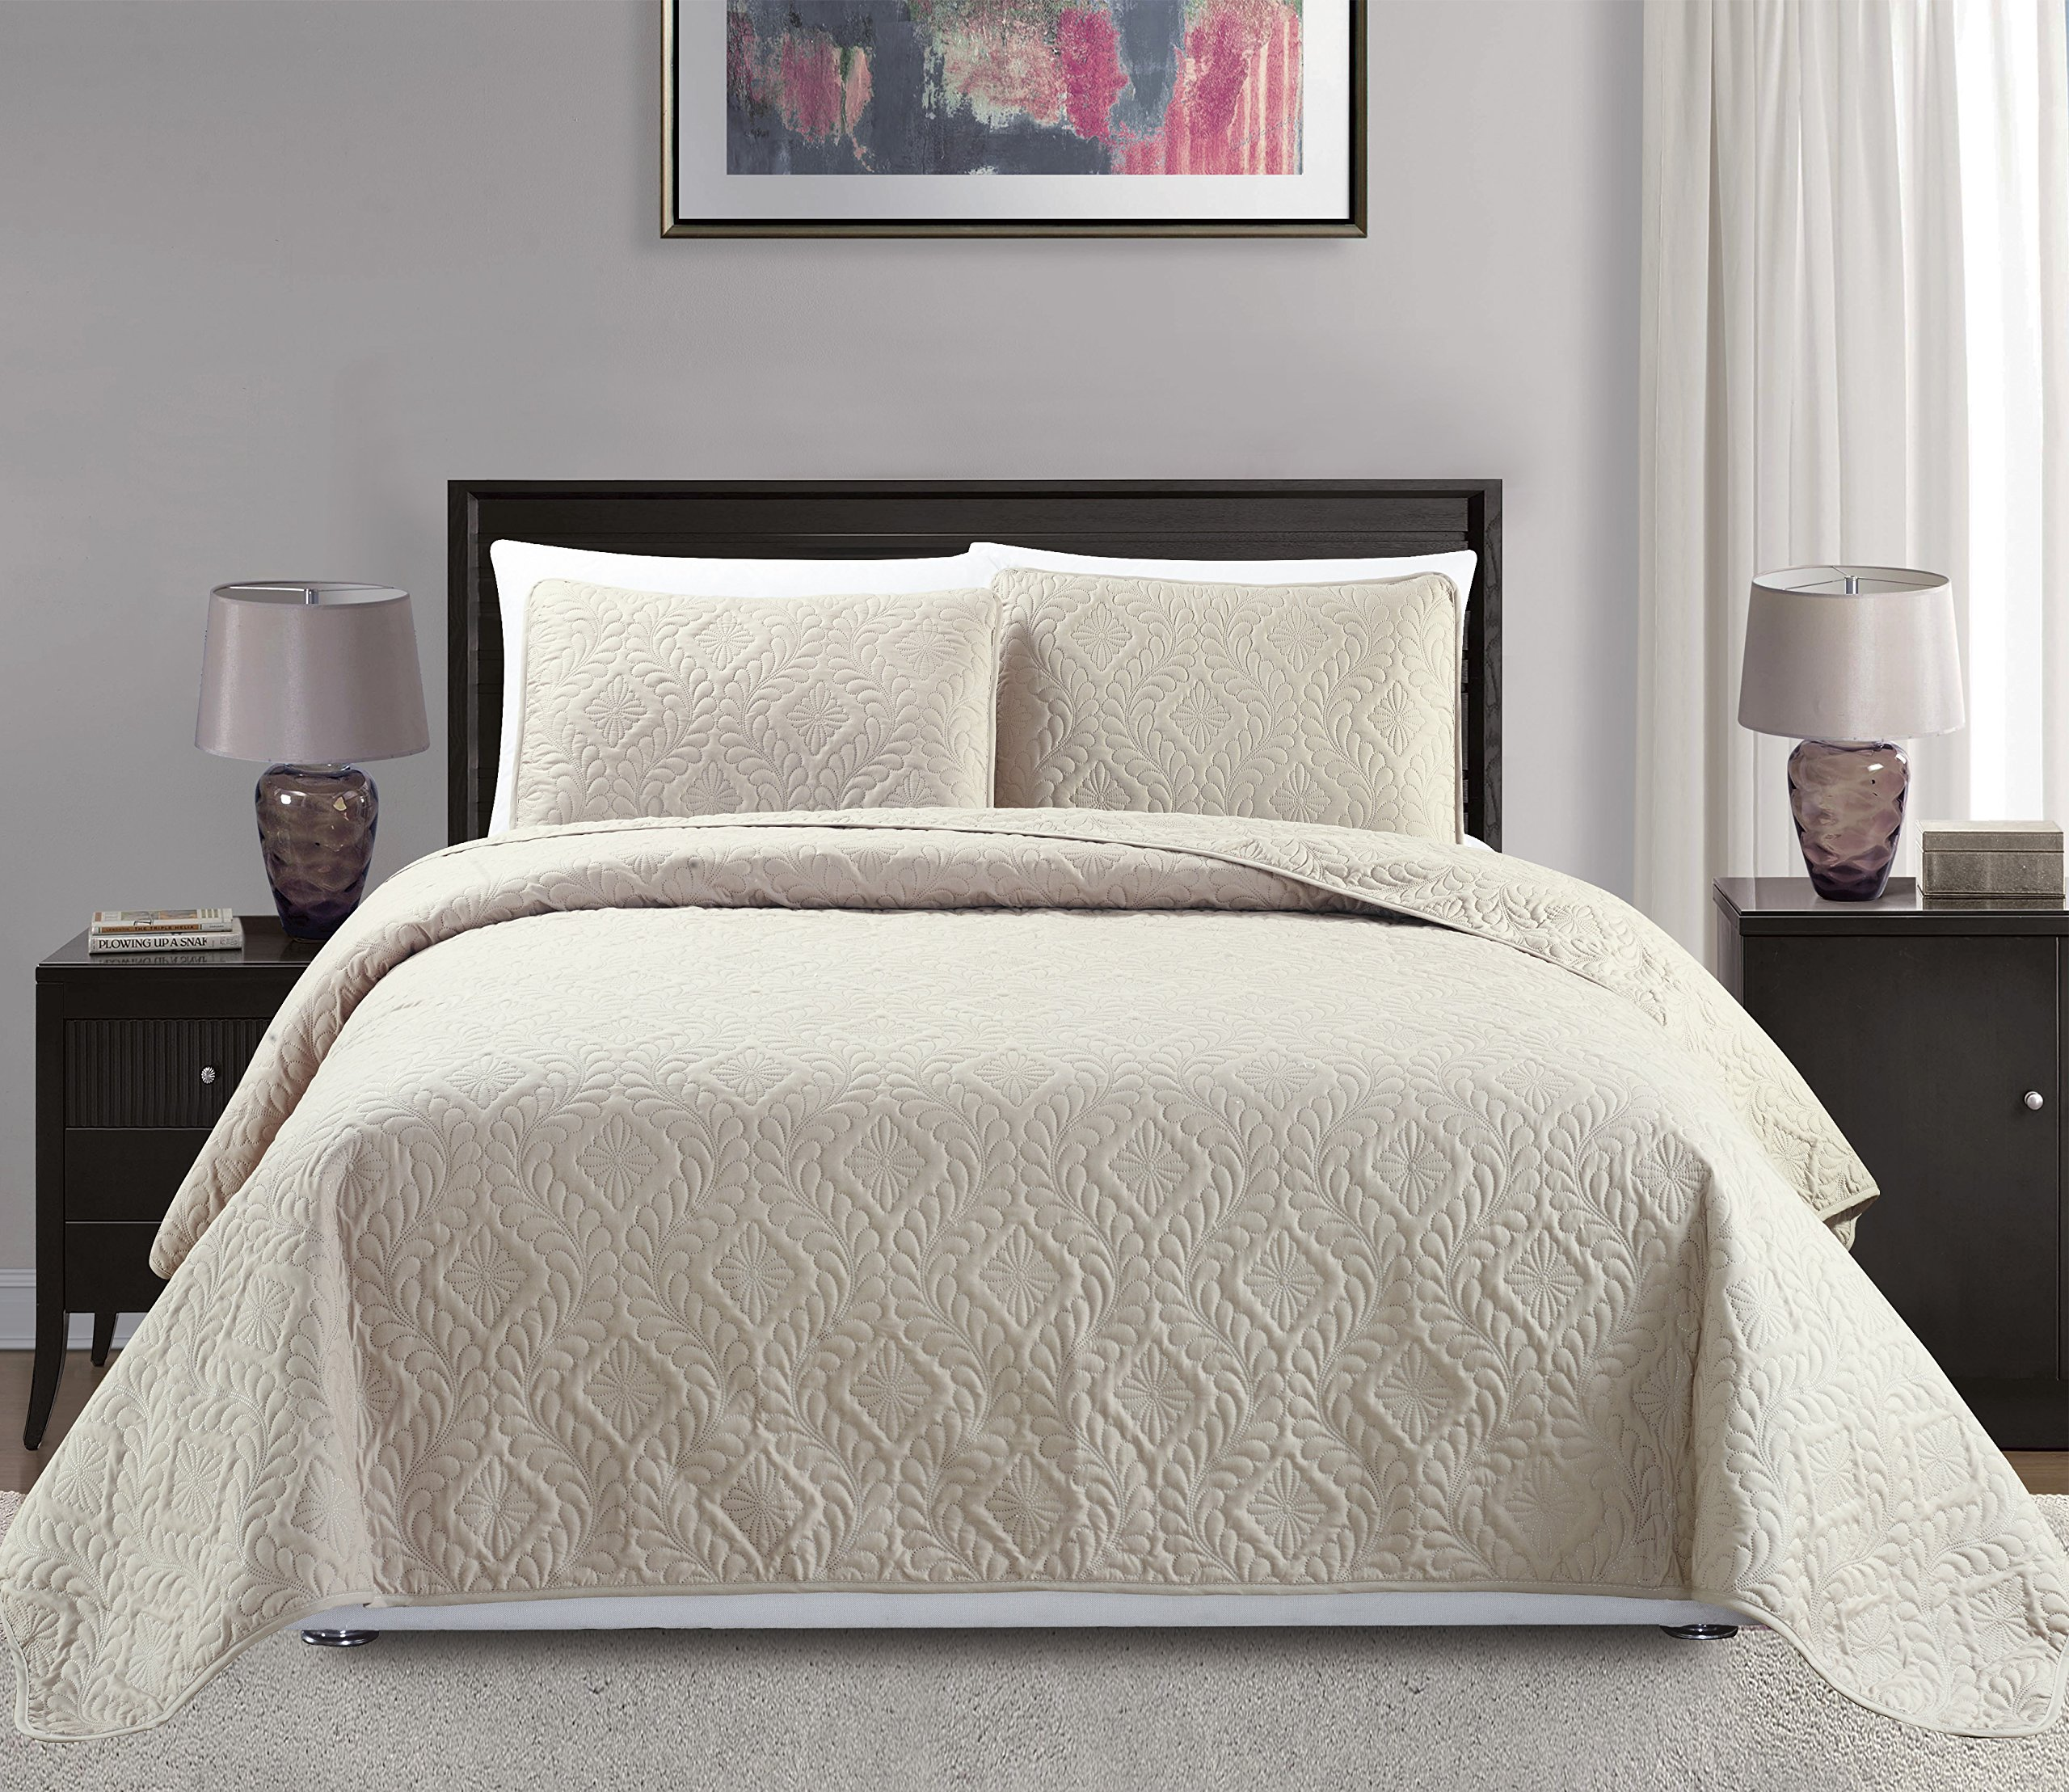 Mk Collection King/California king over size 118''x106'' 3 pc Diamond Bedspread Bed-cover Embossed solid Beige New